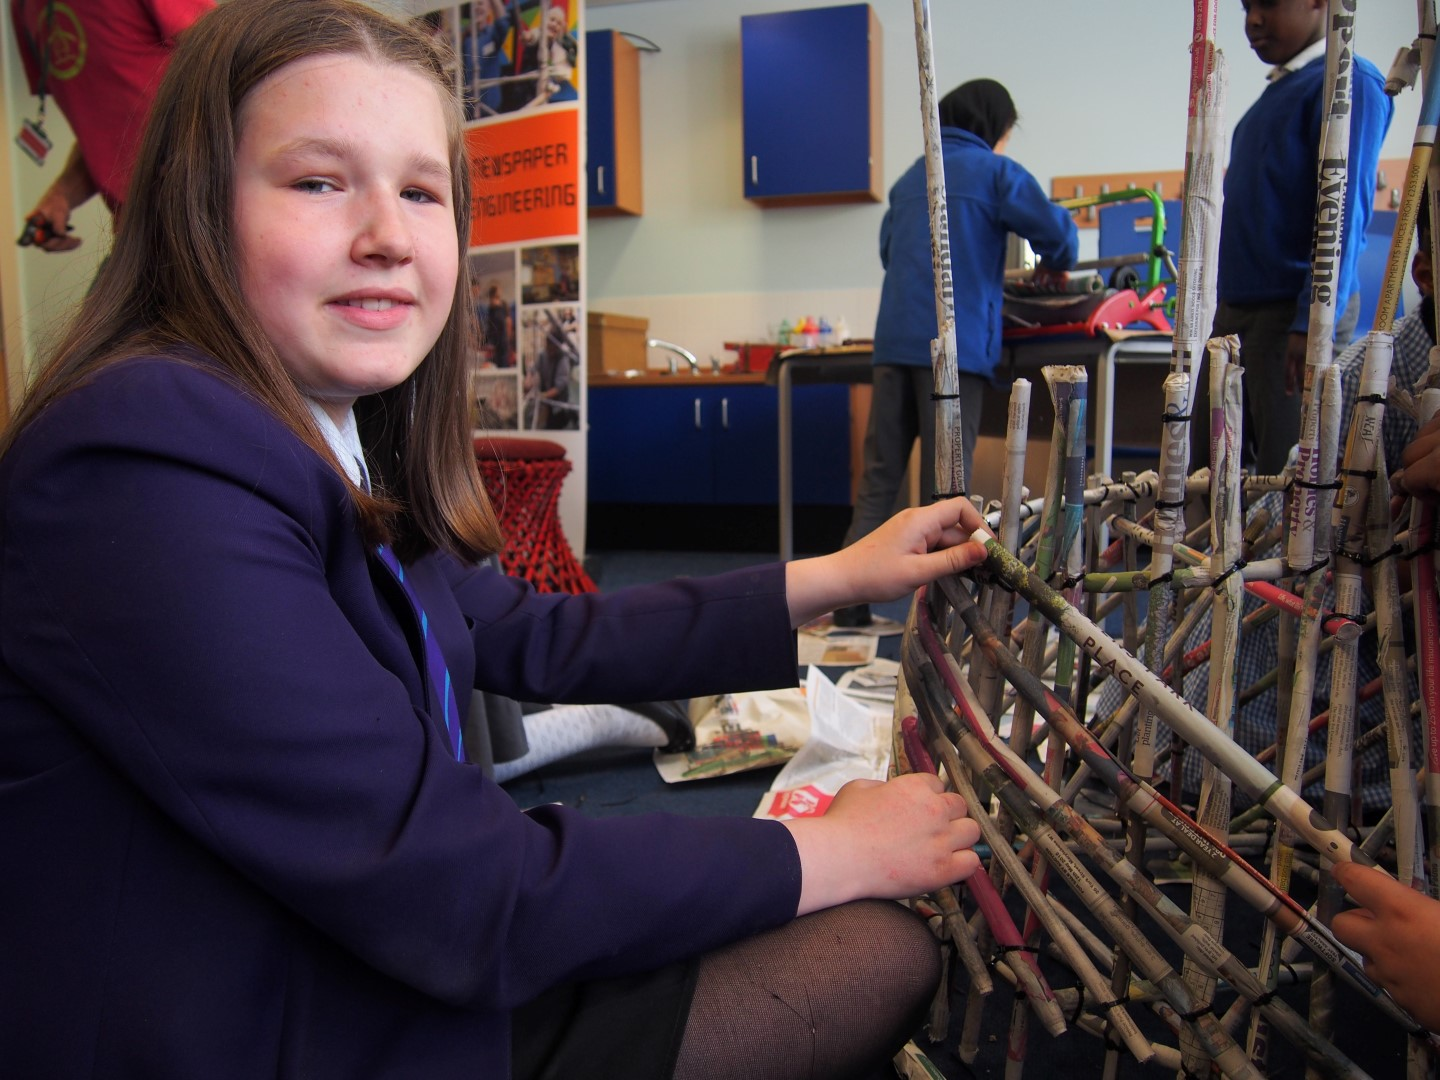 A pupil from a local secondary school helps out on the Newspaper Engineering activity at Willow Bank Primary Steam Co. Day